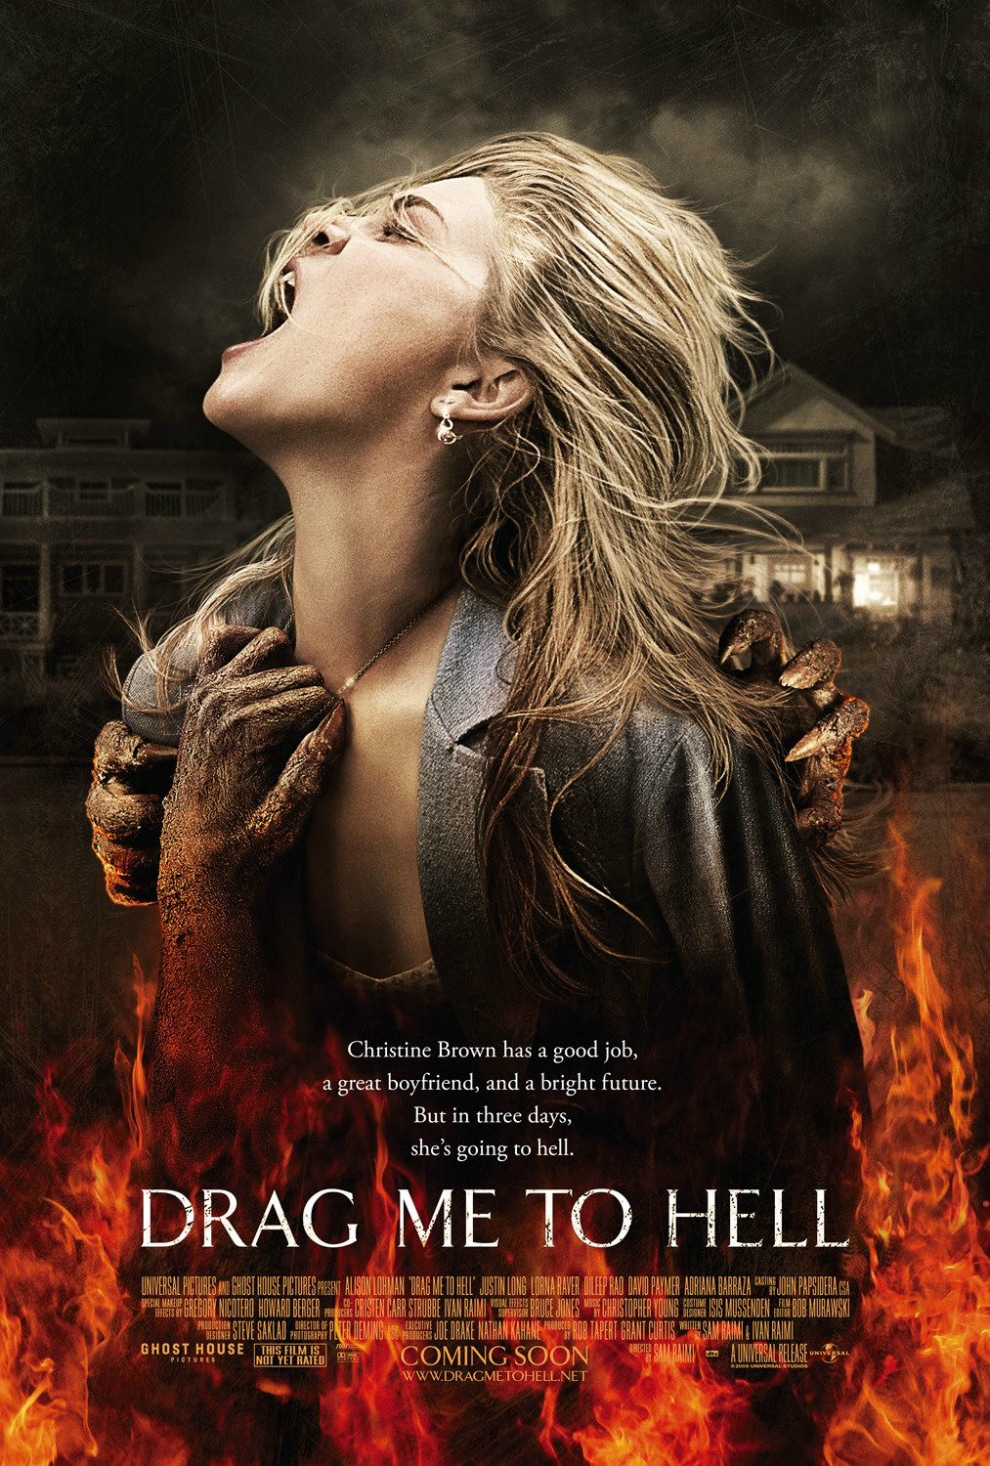 official drag me to hell poster